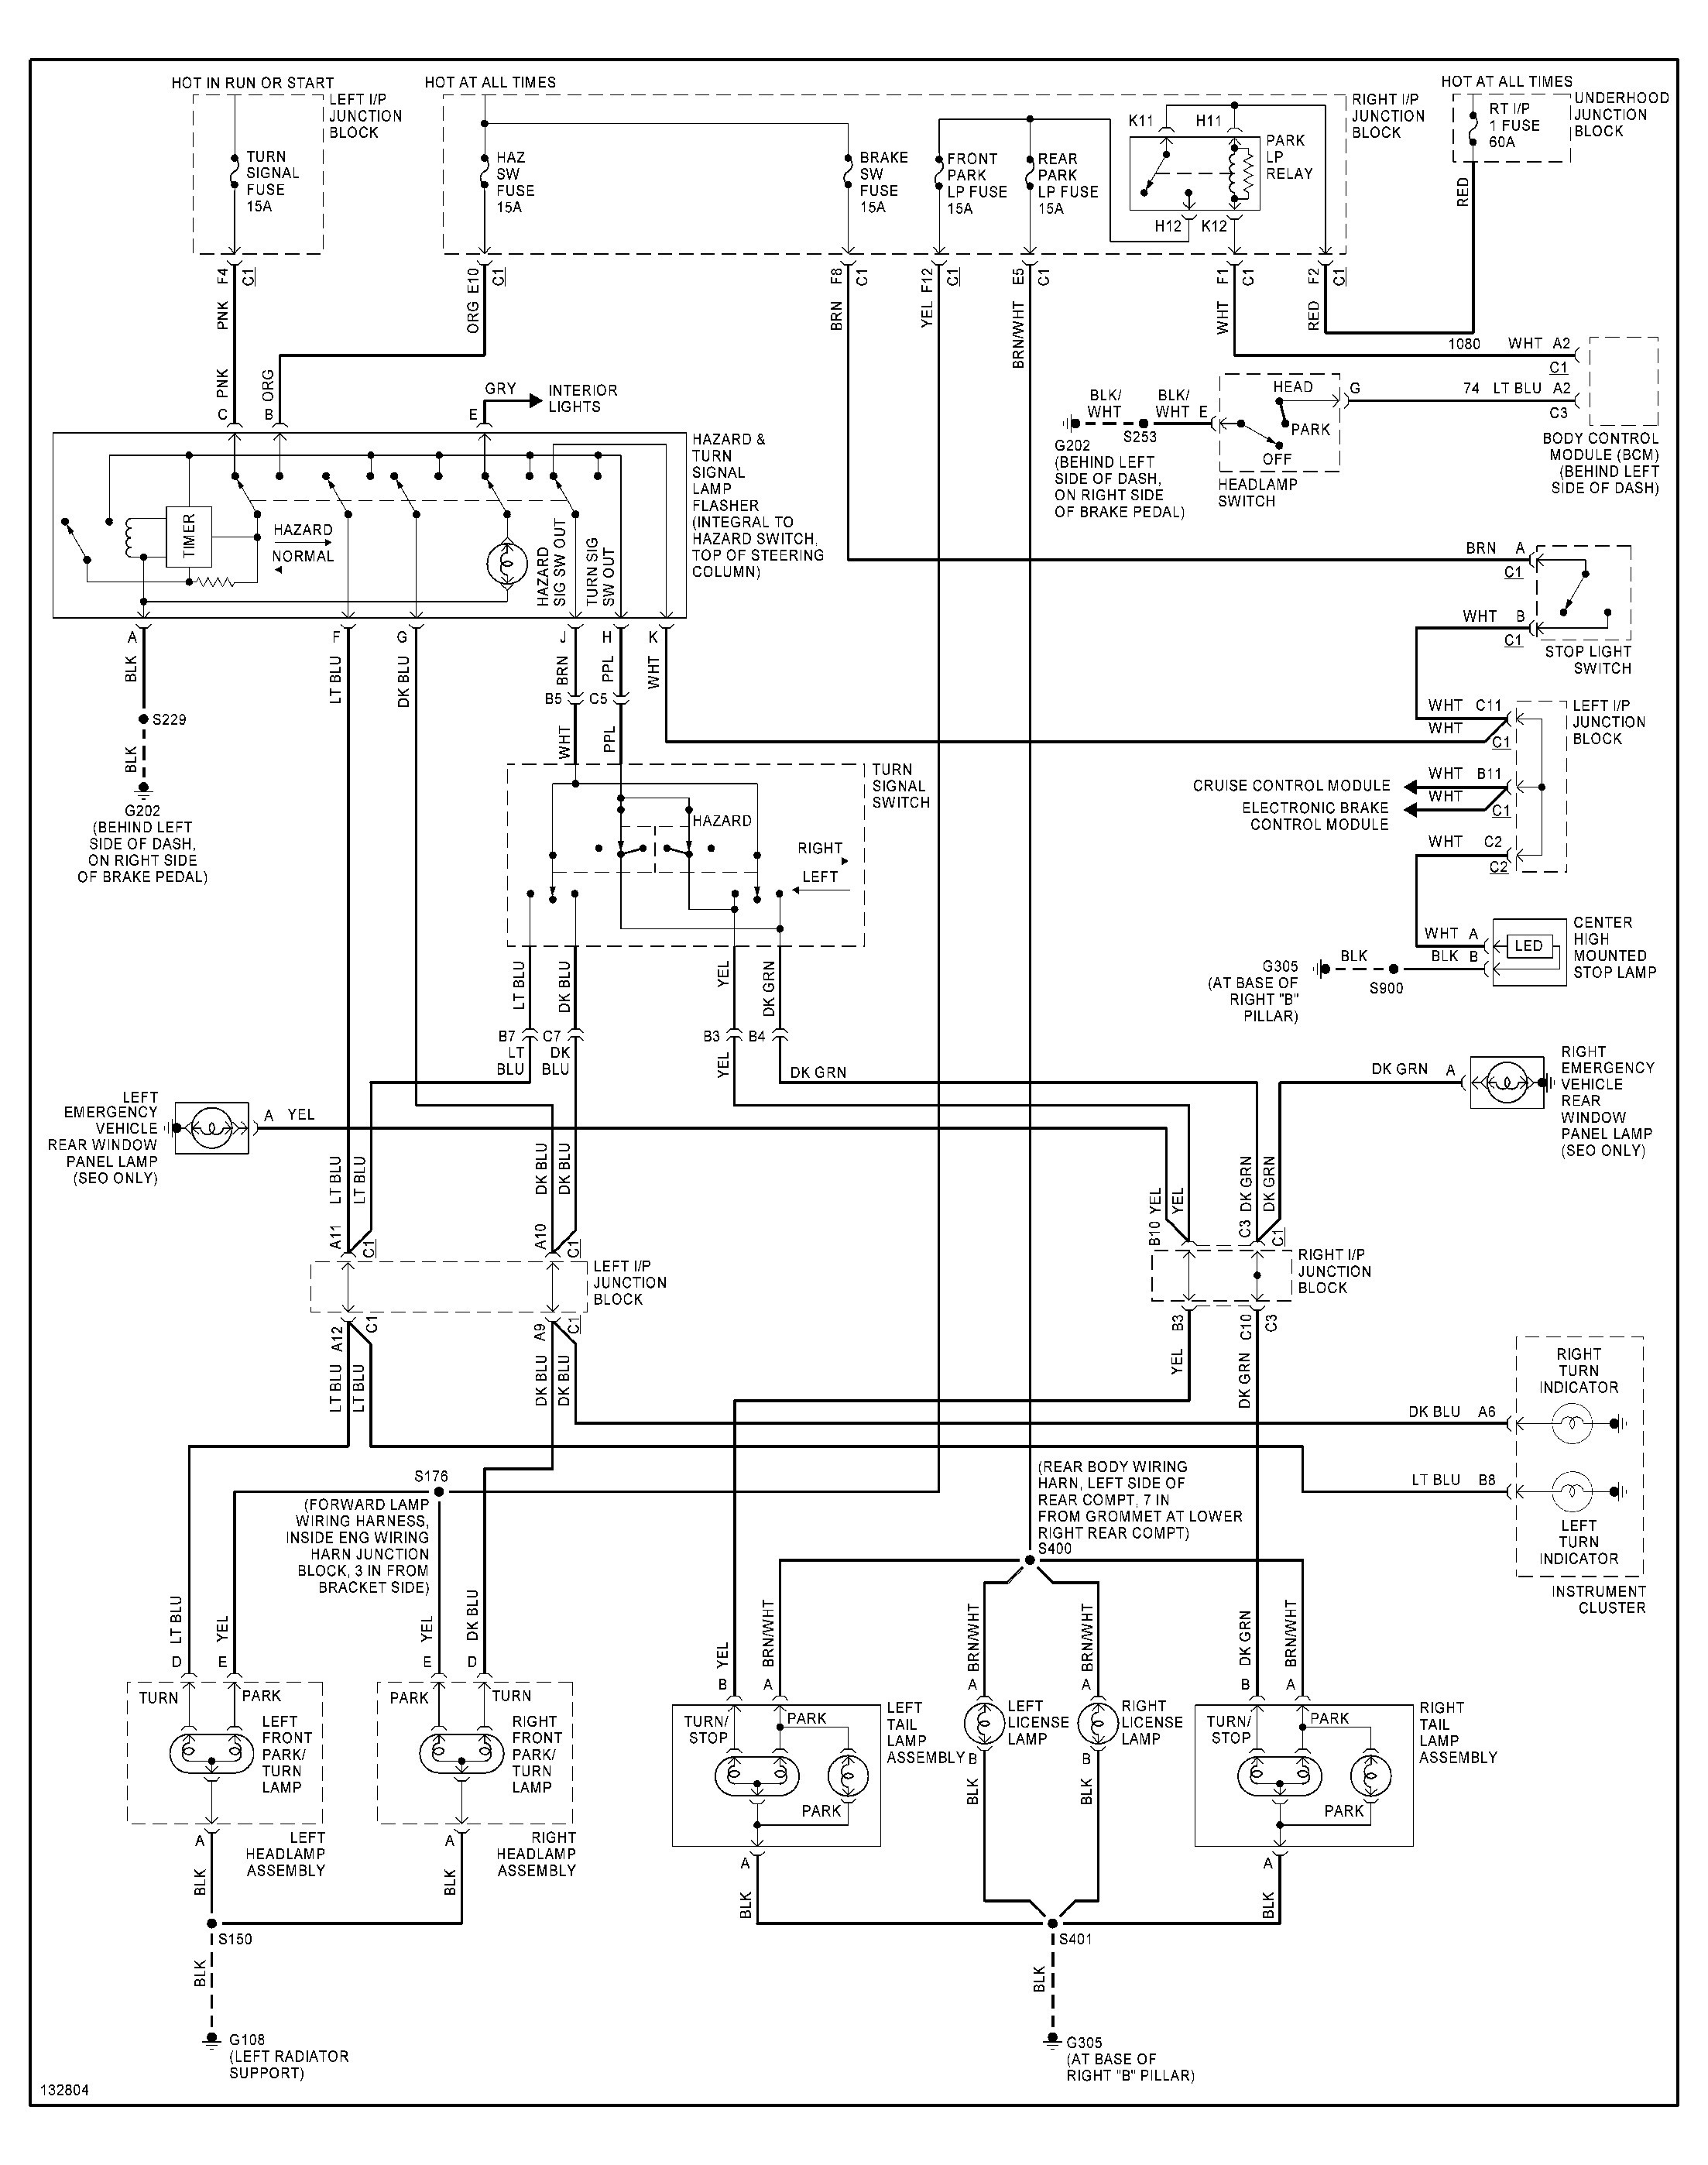 1994 s10 marker light wiring diagram